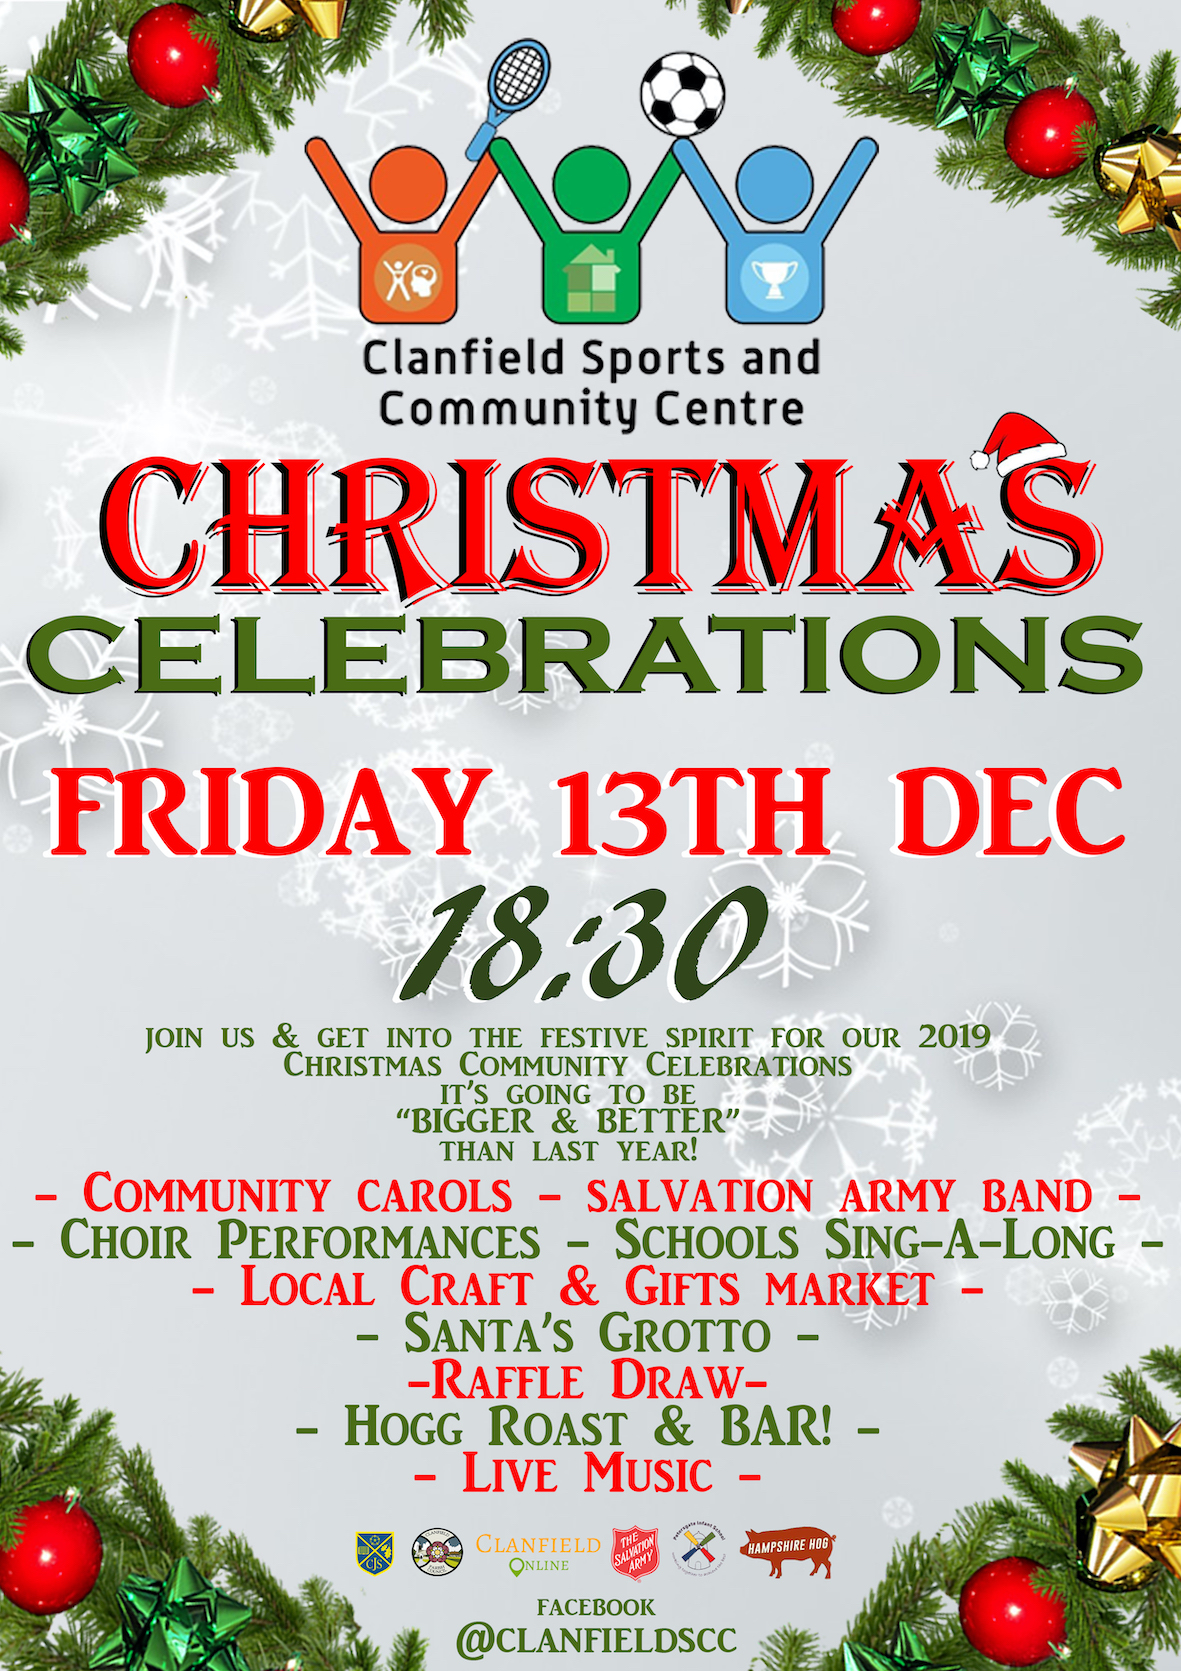 Clanfield Sports and Community Centre Christmas Celebrations